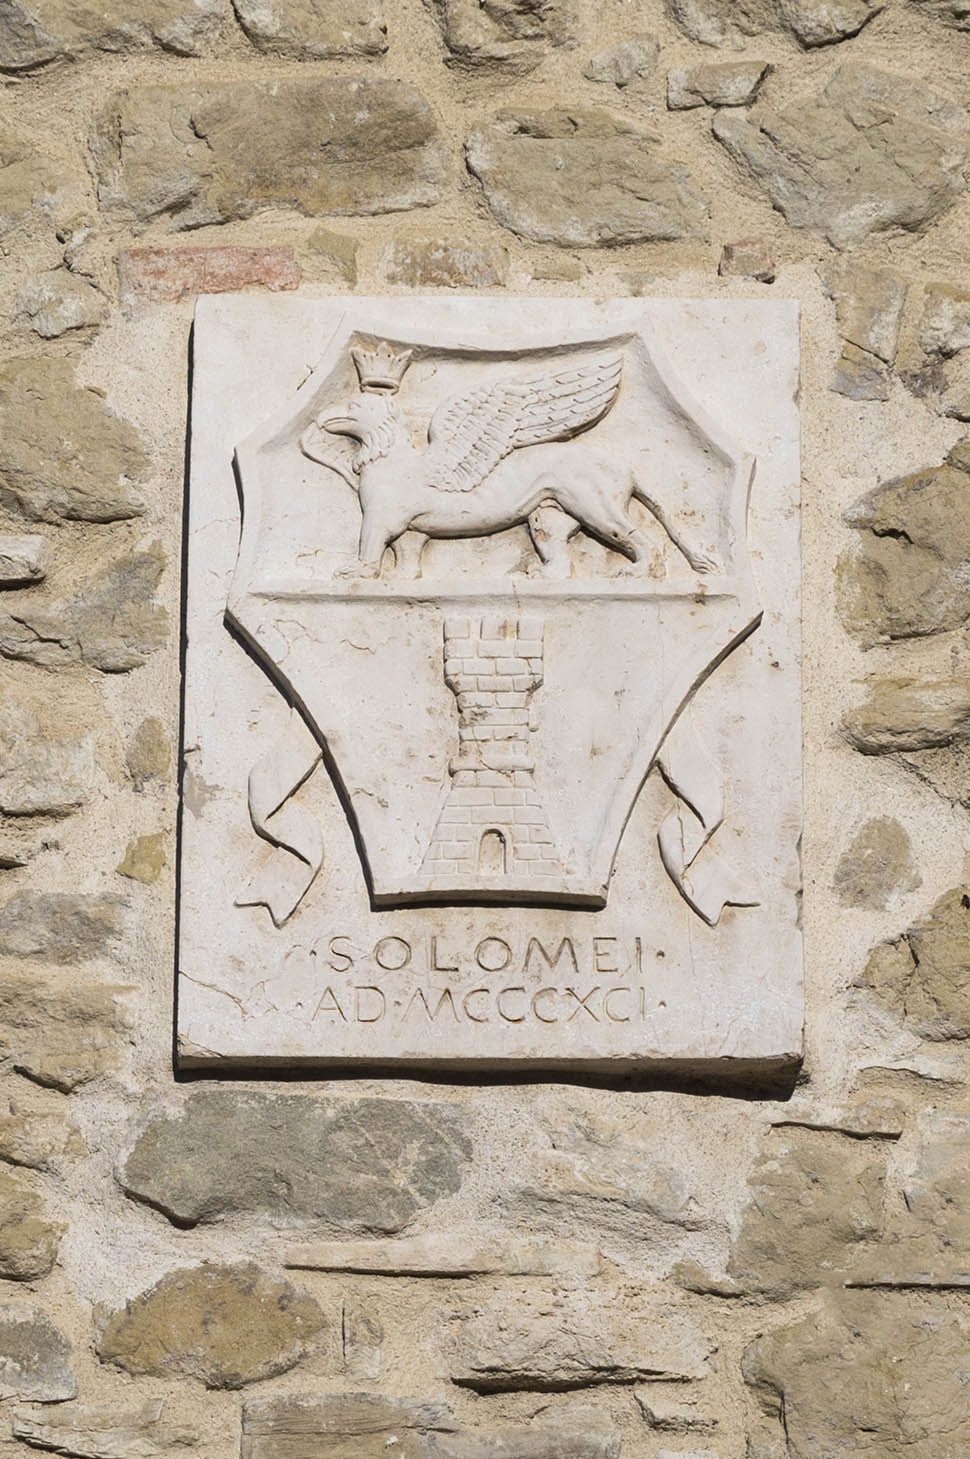 The crest of Solomeo